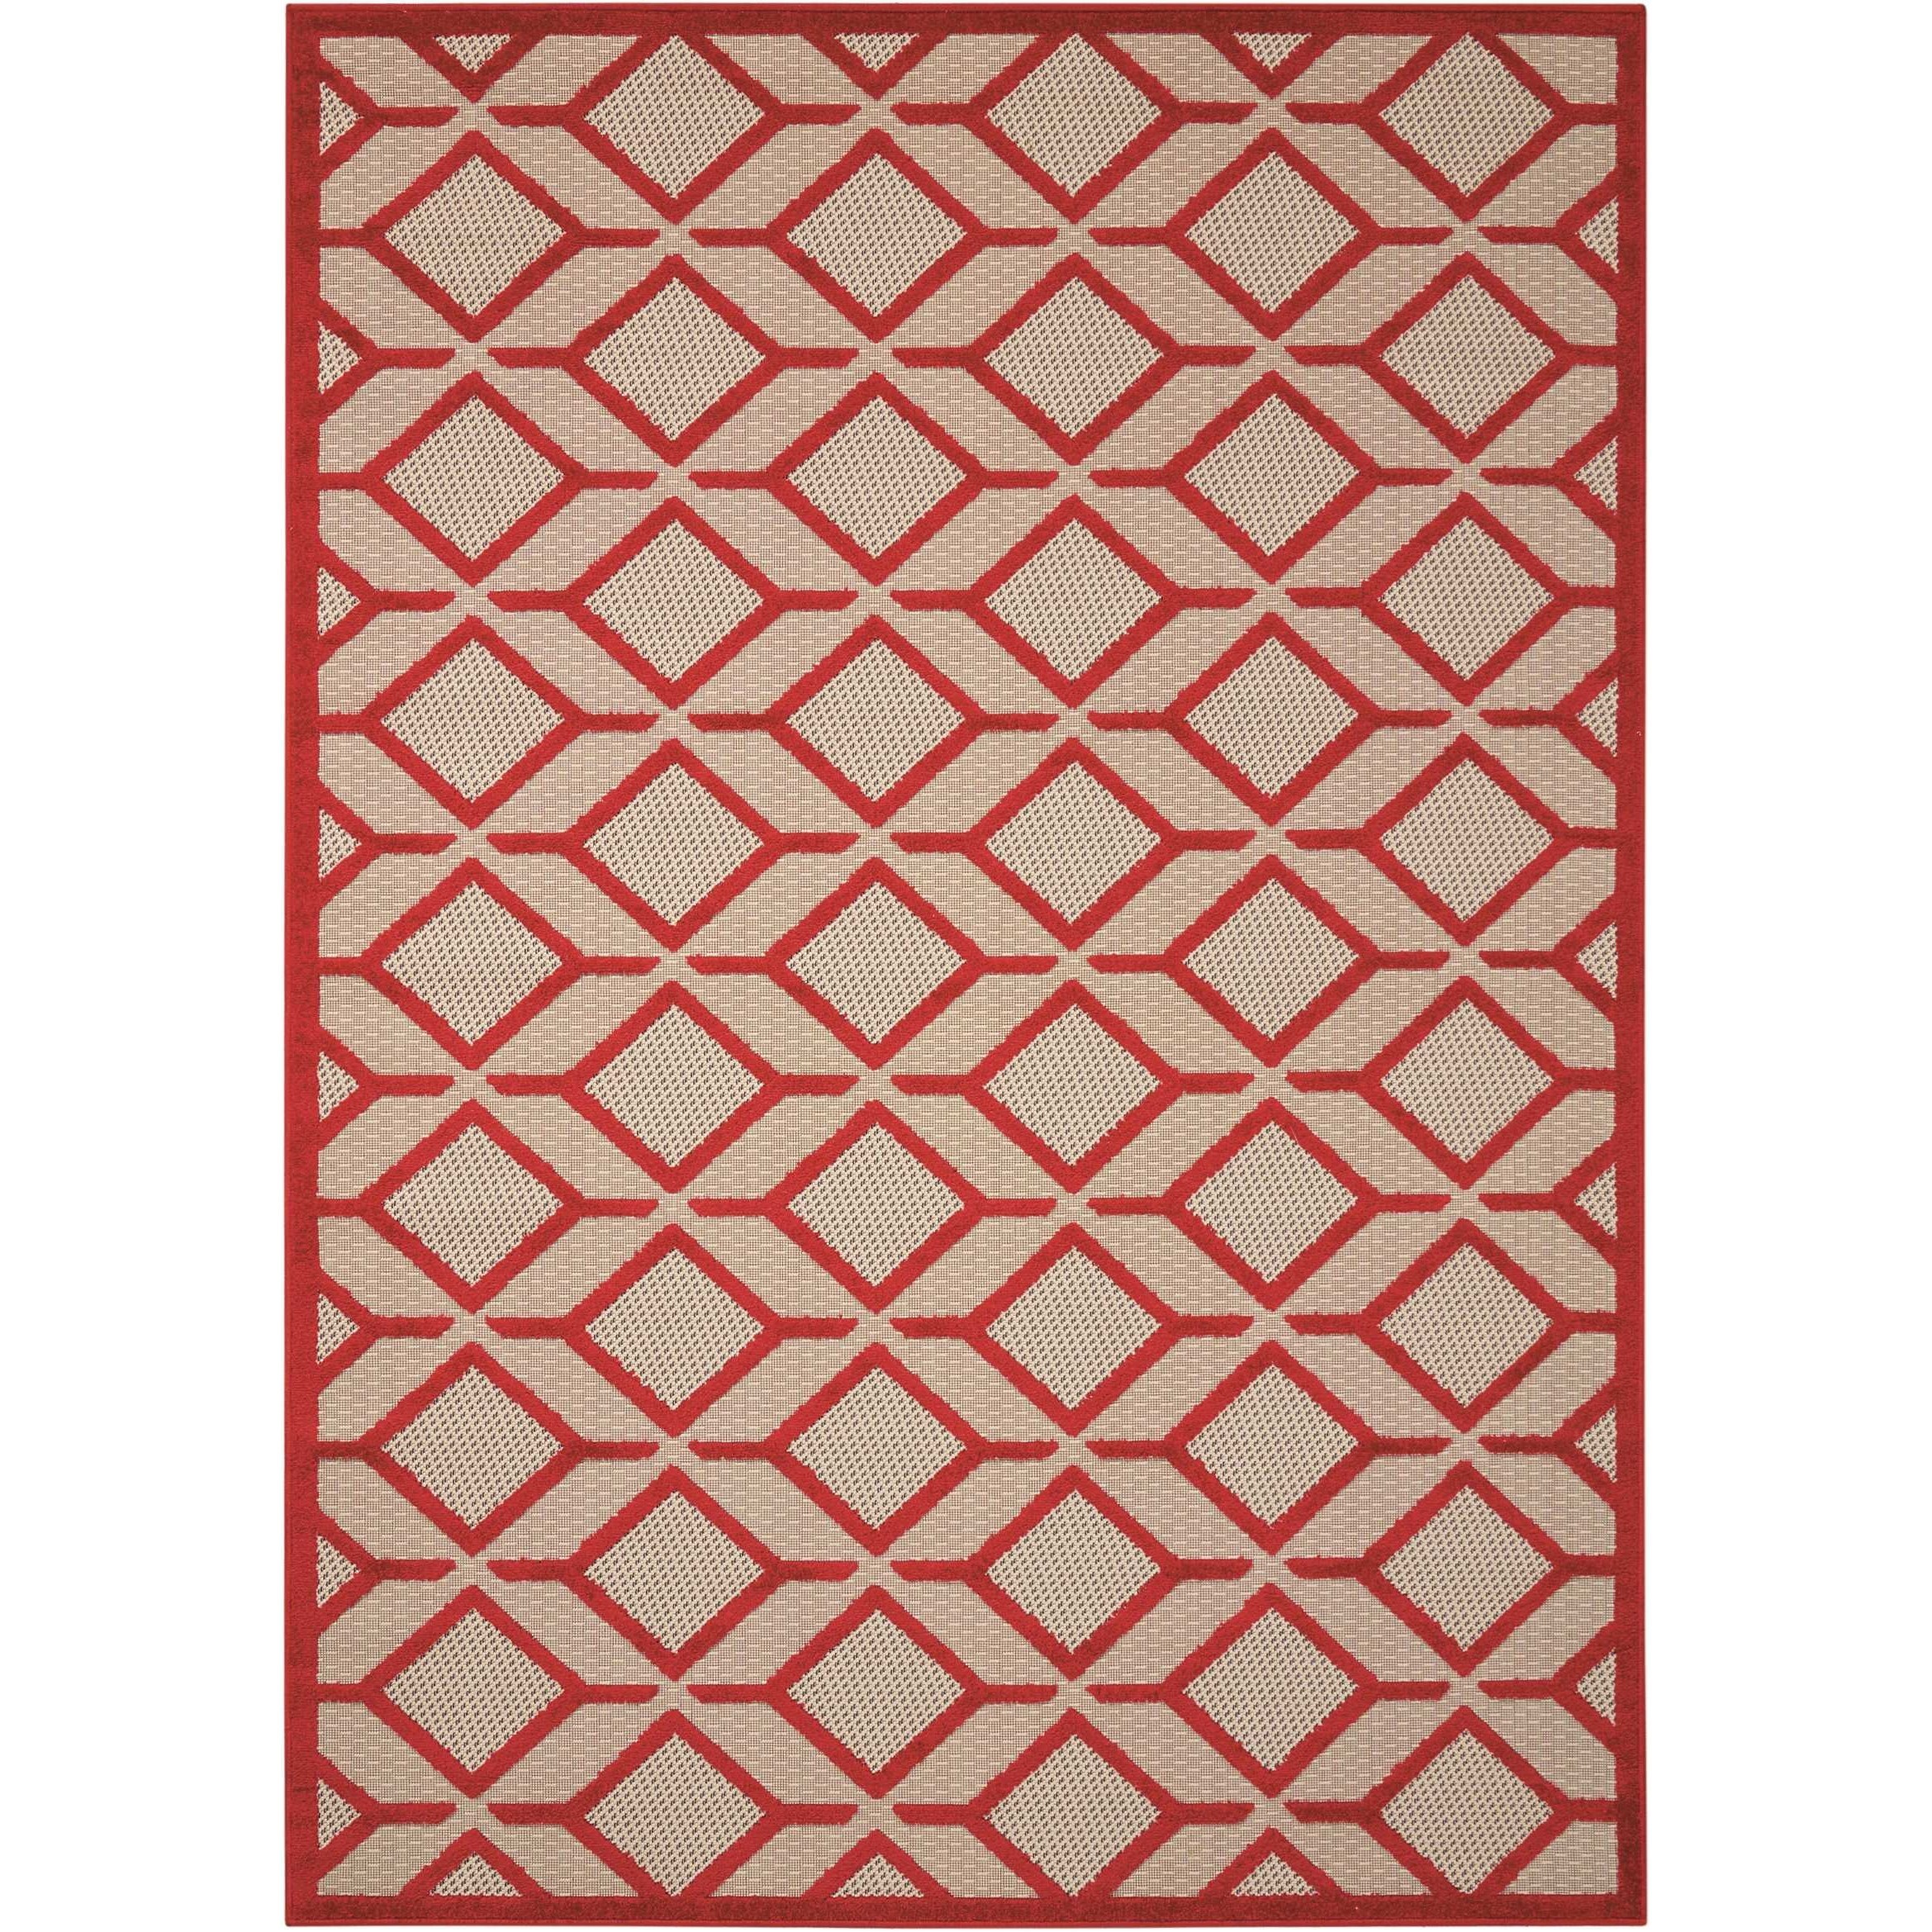 "Aloha 5'3"" x 7'5"" Red Rectangle Rug by Nourison at Sprintz Furniture"